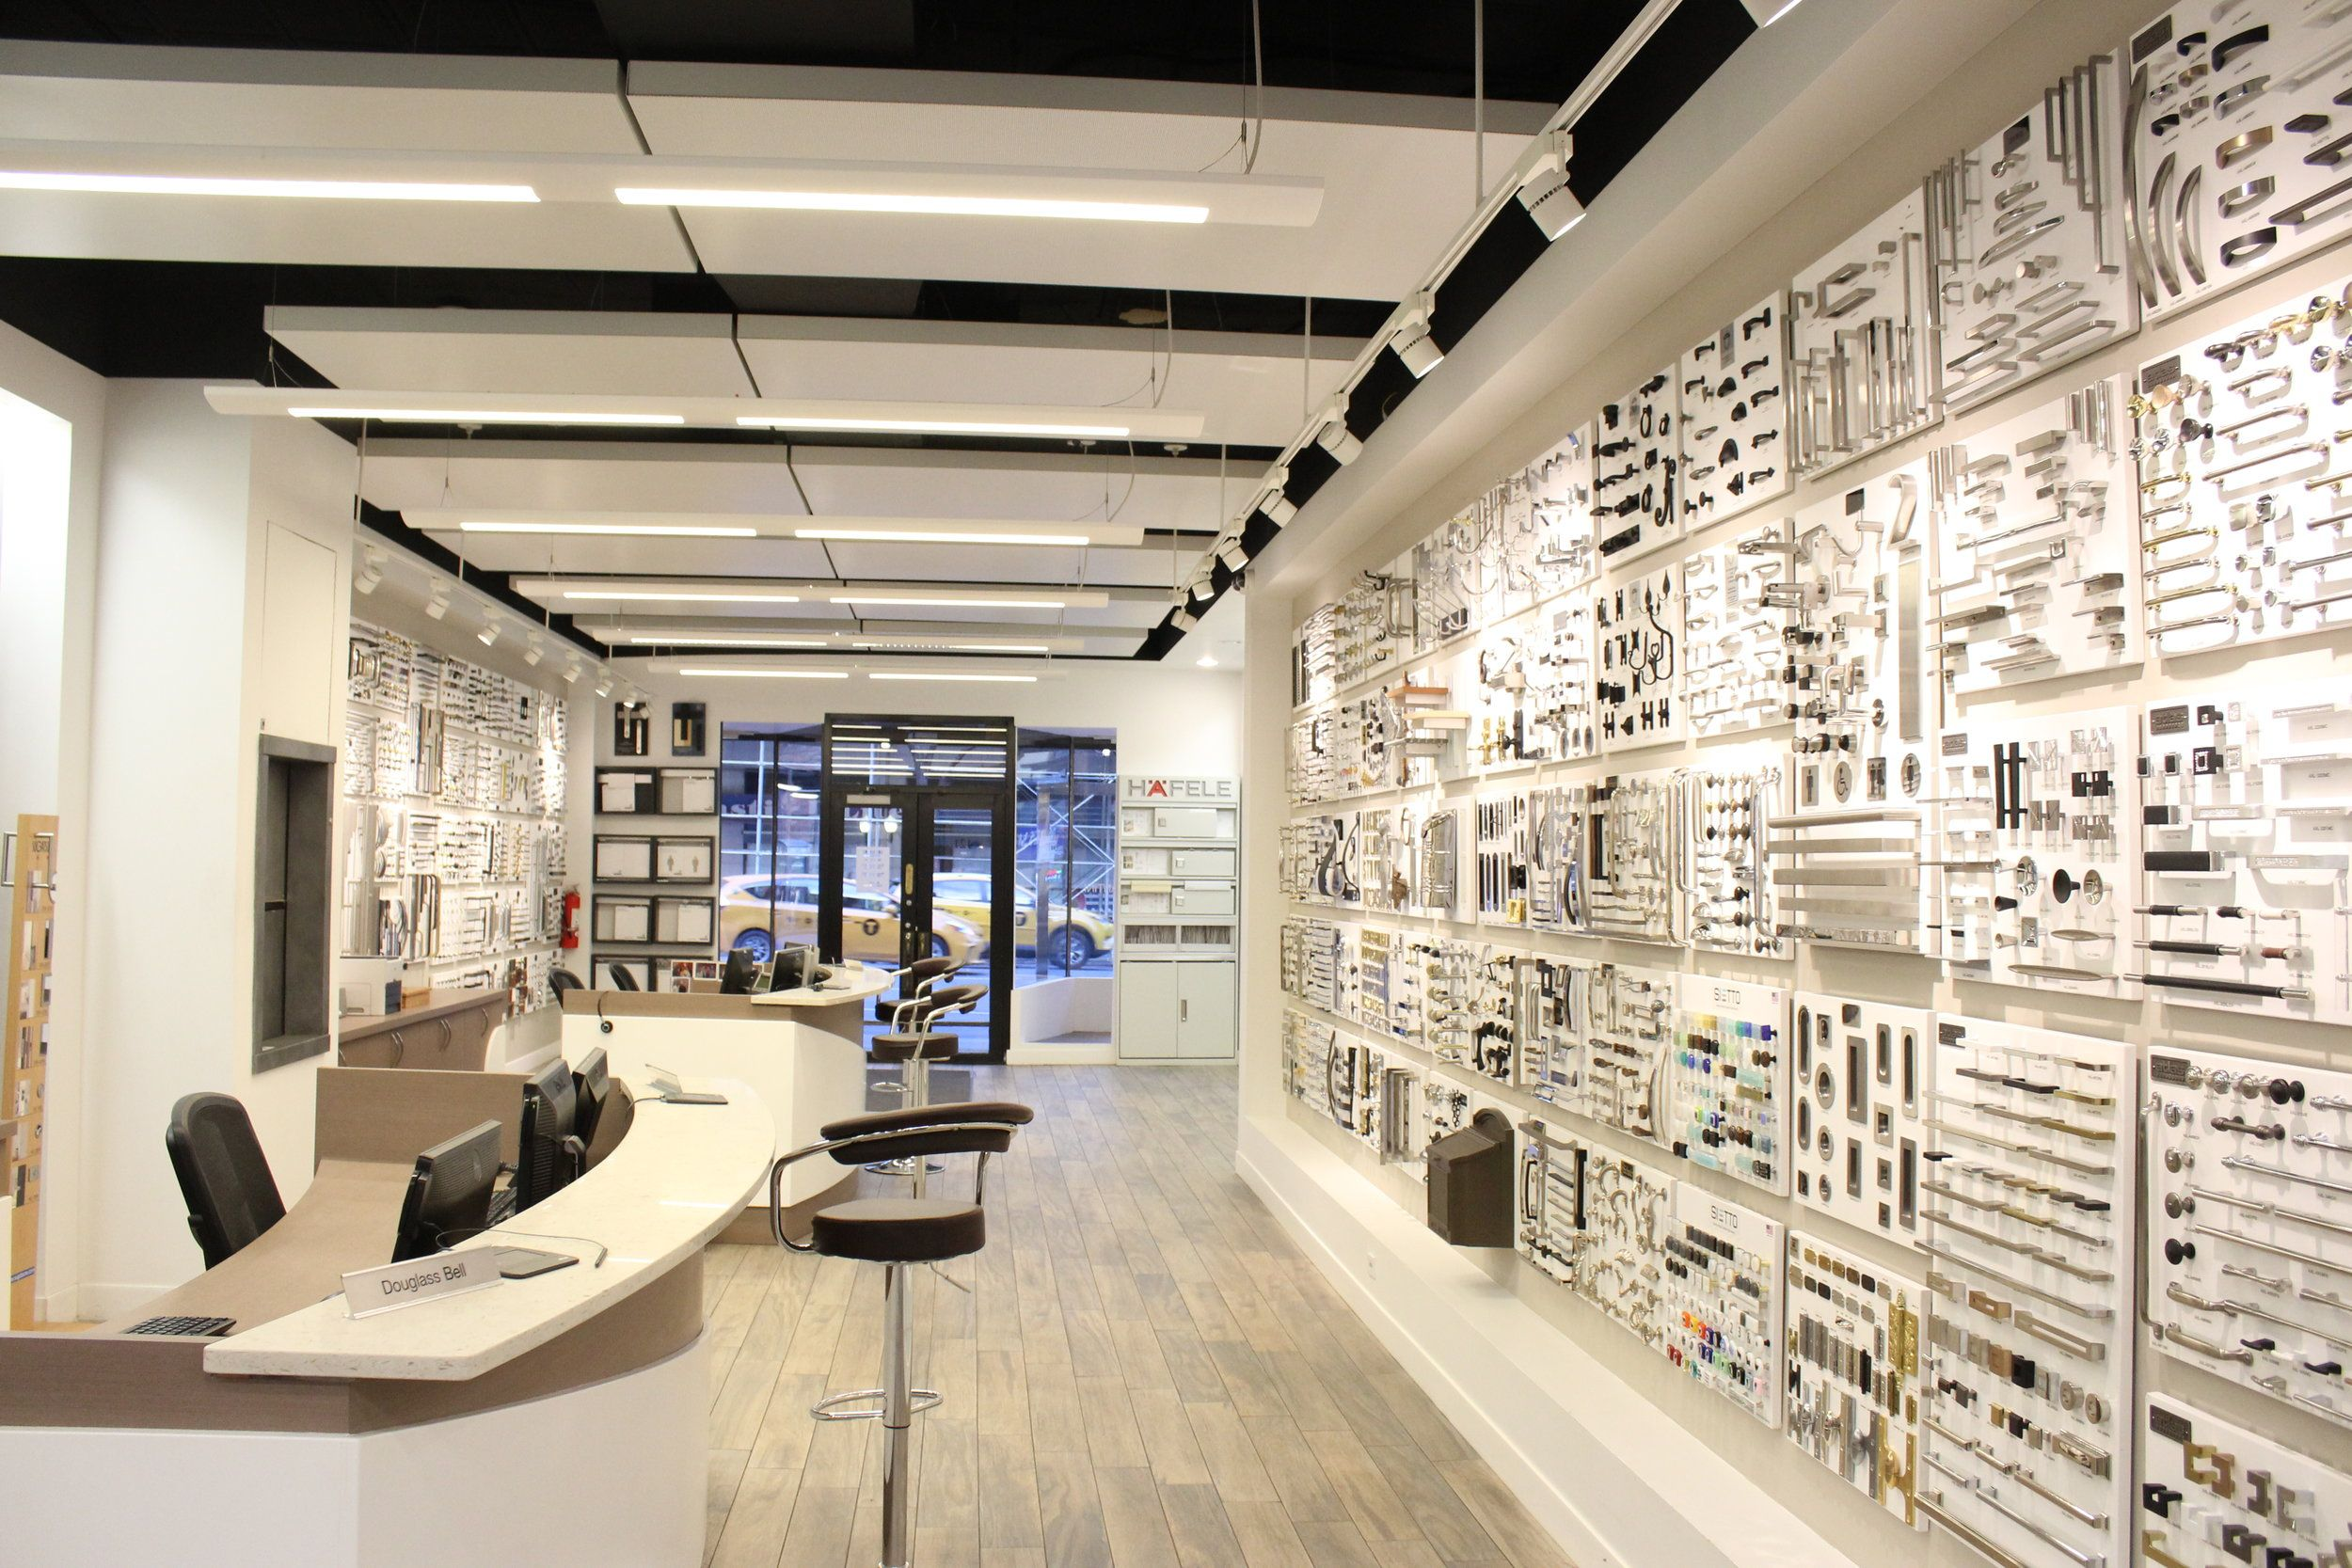 Simon S Hardware Showroom Decor Ceiling Design Modern Interior